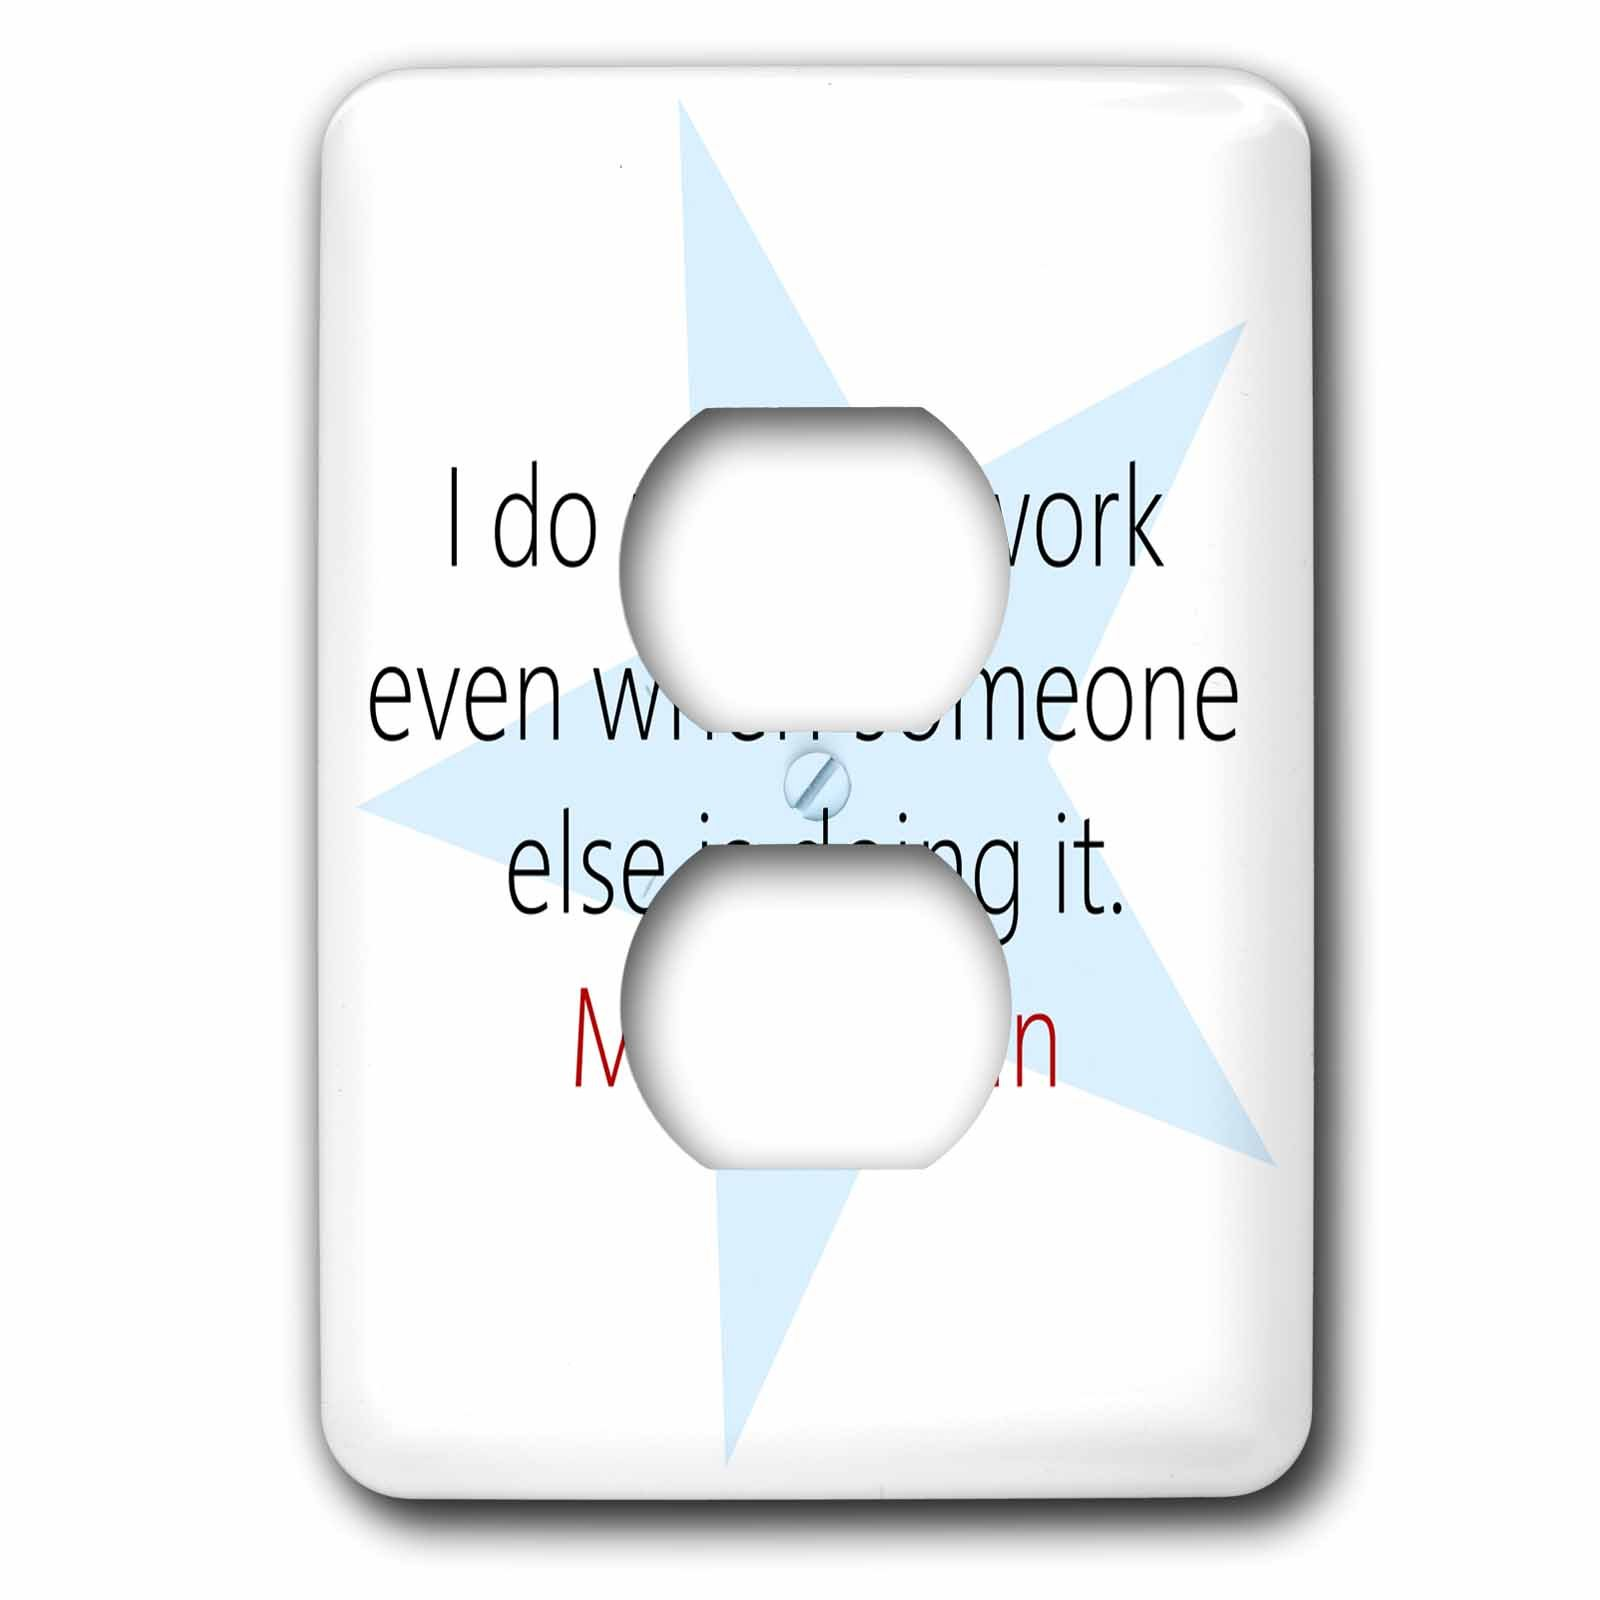 3dRose Alexis Design - Quotes Mark Twain - Mark Twain Quotes - I do not like work - Light Switch Covers - 2 plug outlet cover (lsp_273723_6)